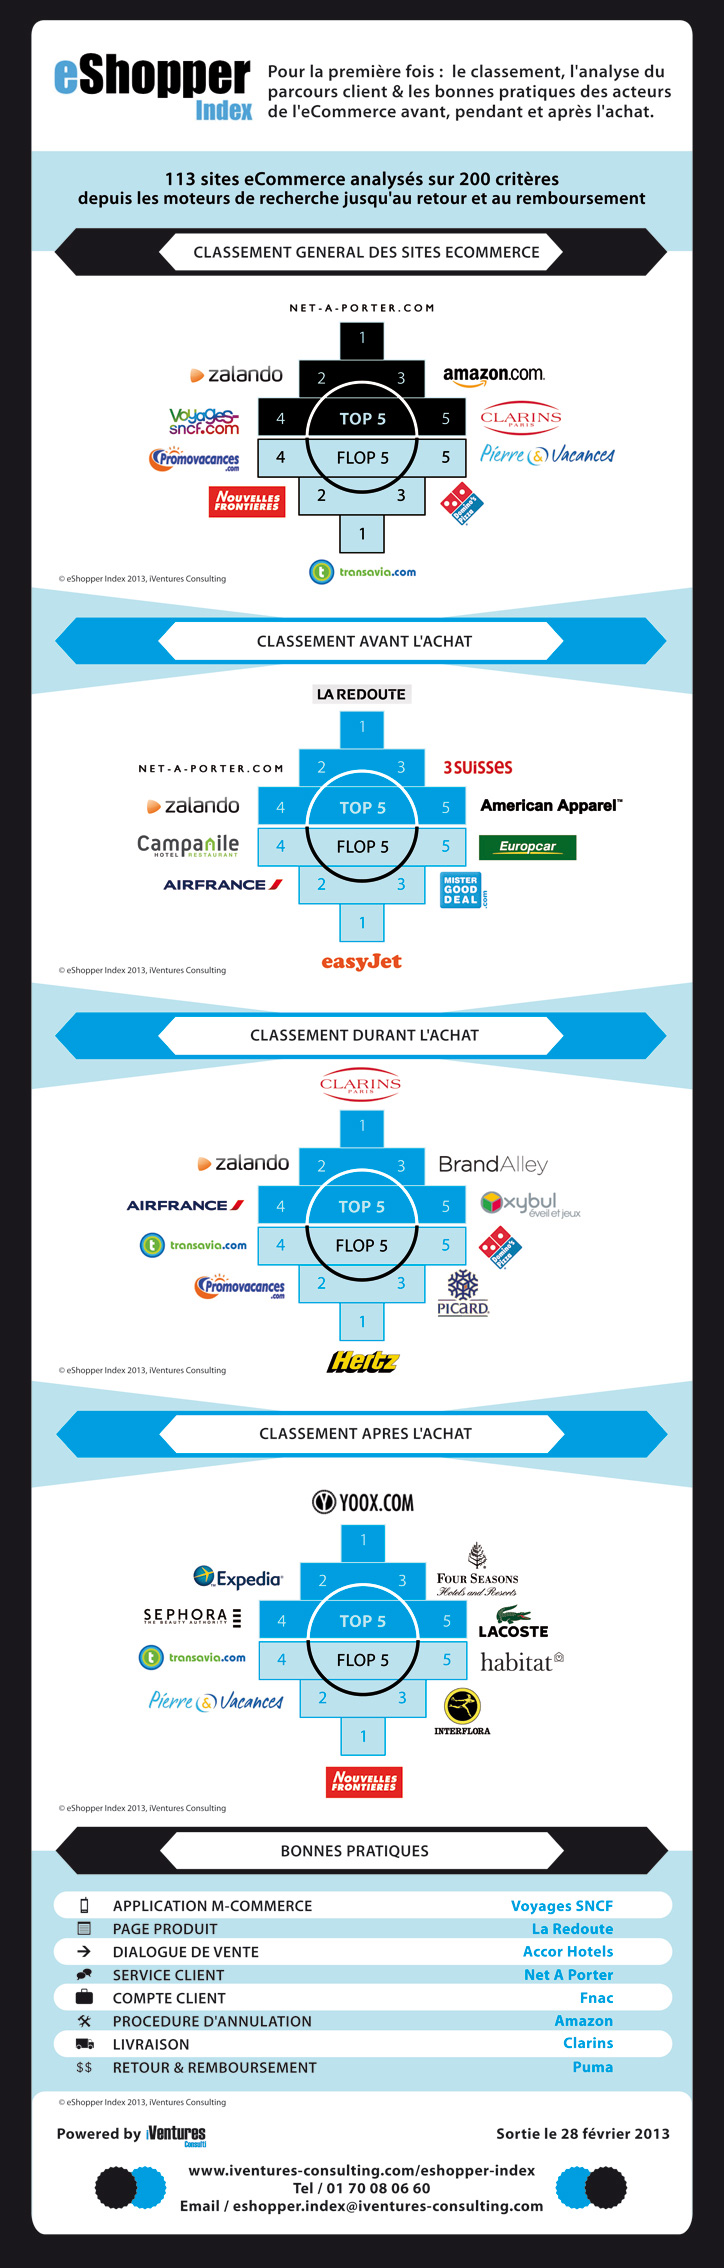 eShopper Index 2013 Infographic - Classement eshopper et performance des sites ecommerce